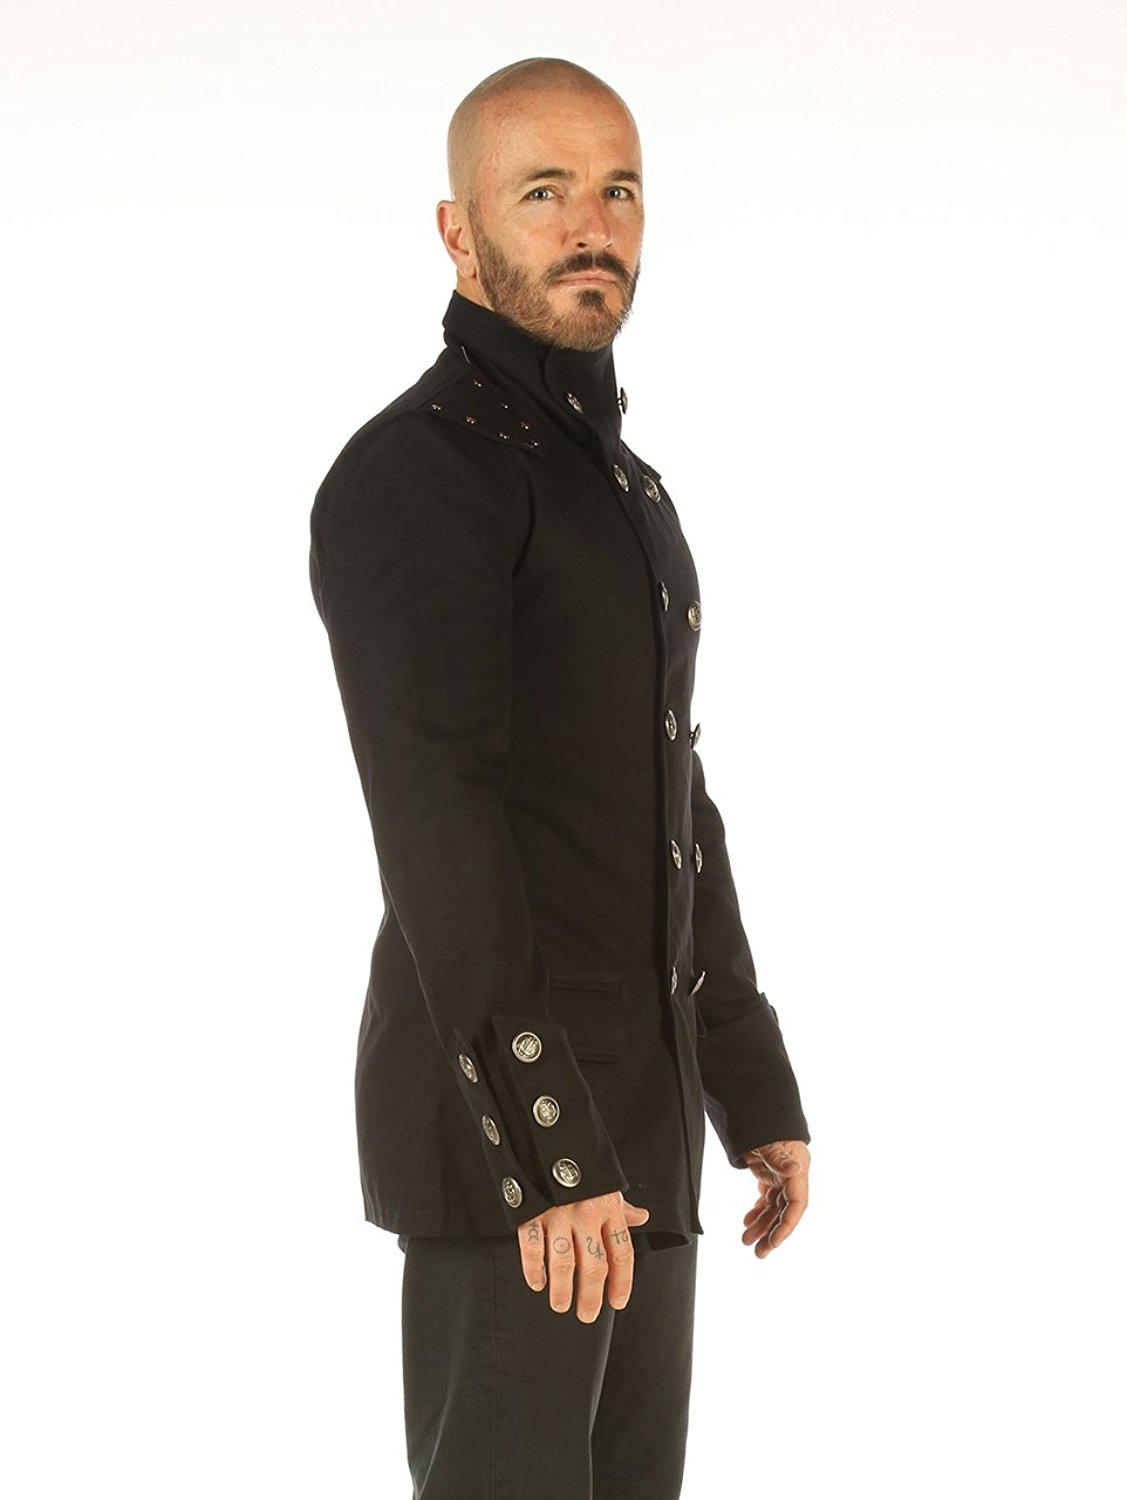 rebelsmarket_gothic_steampunk_military_jacket_mens_top_mandarin_collar_smart_trench_coat_coats_3.jpg